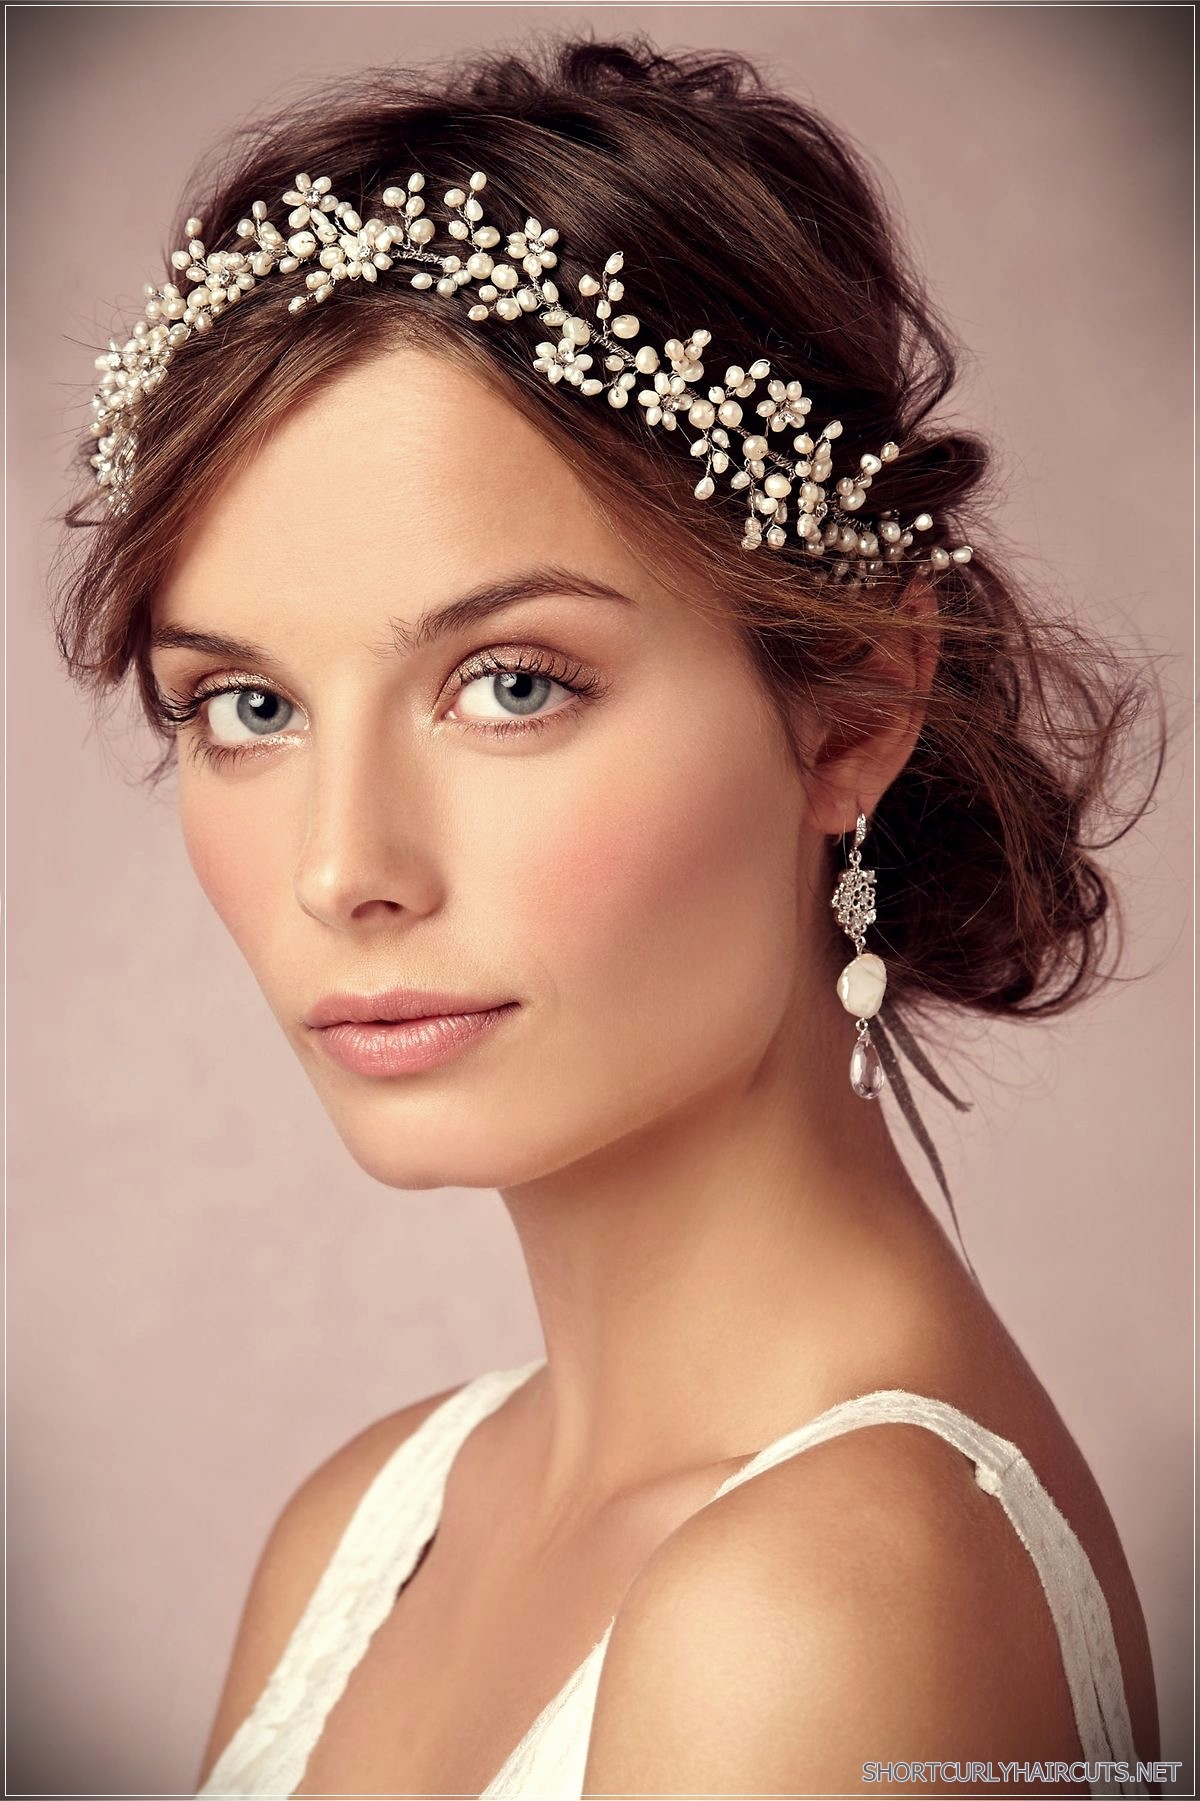 12 Stunning Short Hairstyles for Weddings - stunning short hairstyles for weddings 23